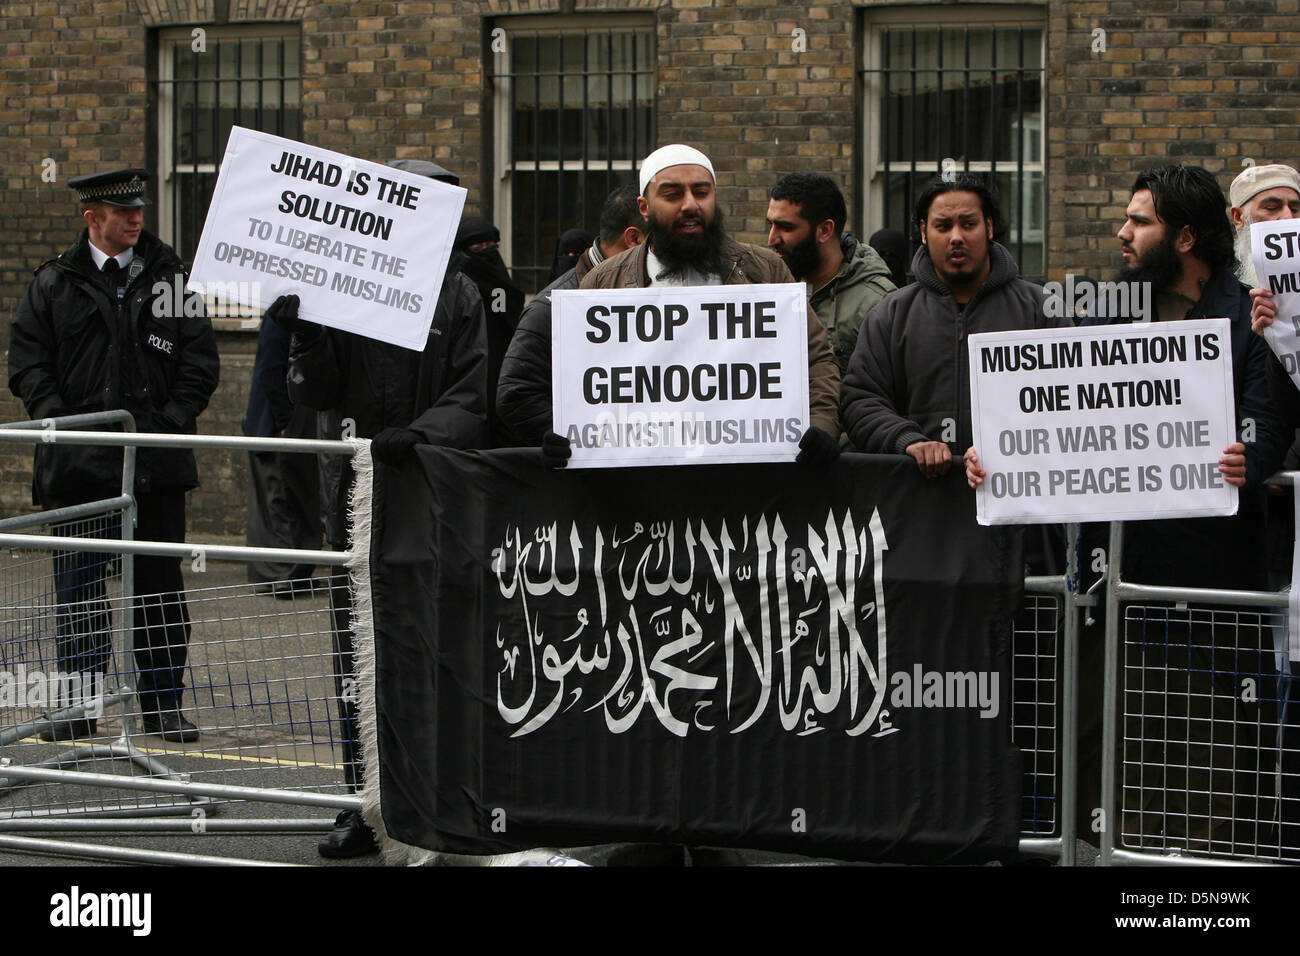 London, UK. 5th April 2013.  Extremist Muslim pressure group protest outside the Sri Lankan embassy. Credit: Mario Stock Photo